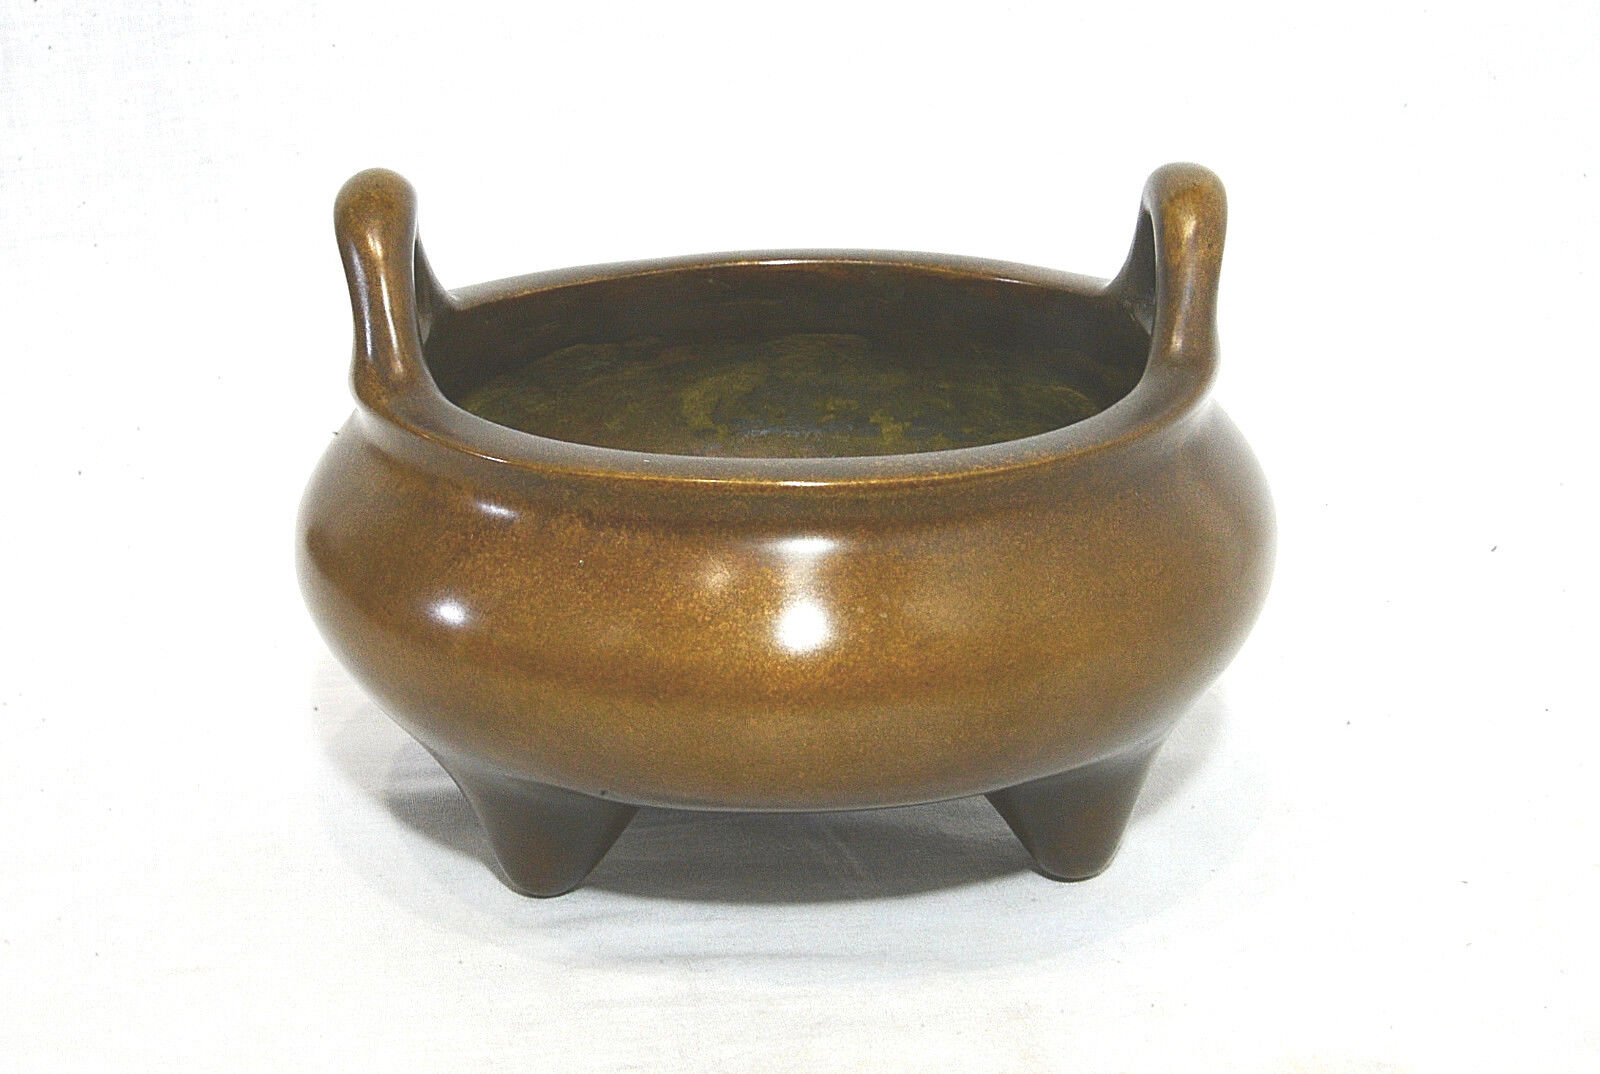 dating chinese bronze incense burners Shop ebay for great deals on antique chinese incense burners you'll find new or used products in antique chinese incense burners on ebay free shipping on many items skip to main content  early 1900s cast metal bronze-tone chinese incense burner, very nice condition.